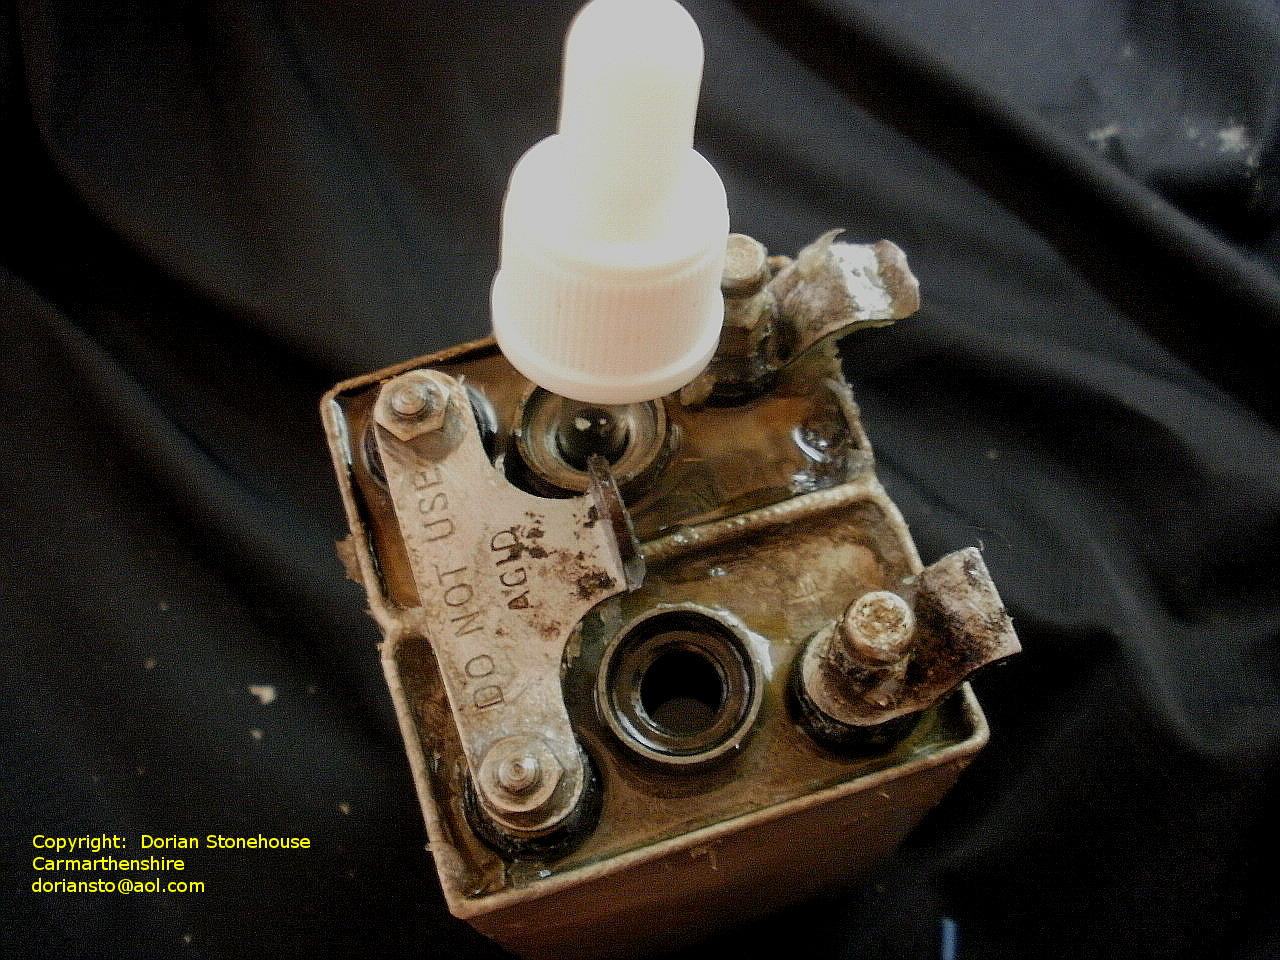 I safely unscrew the cell plugs and wash out and dispose of any old electrolyte and sludge remaining in the cells.